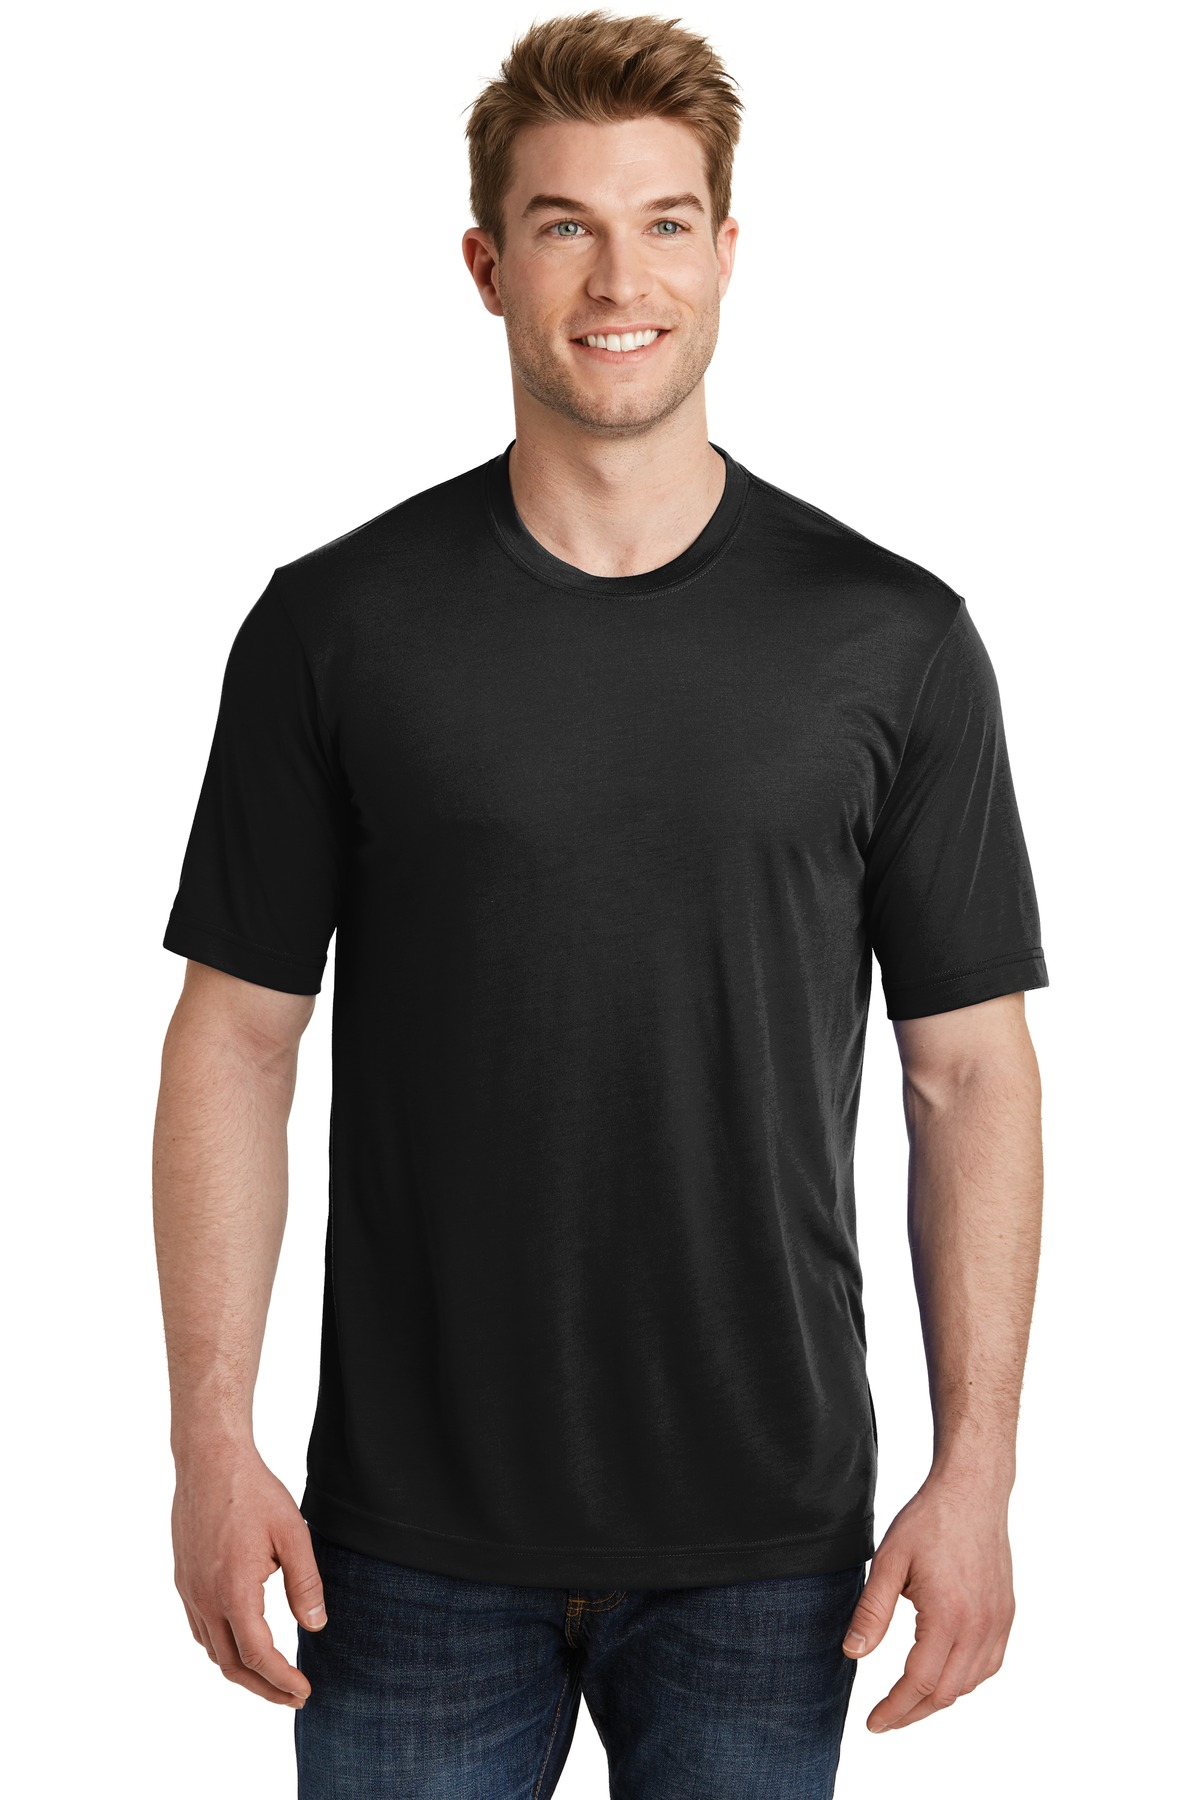 Sport-Tek ®  PosiCharge ®  Competitor ™  Cotton Touch ™  Tee. ST450 - Black